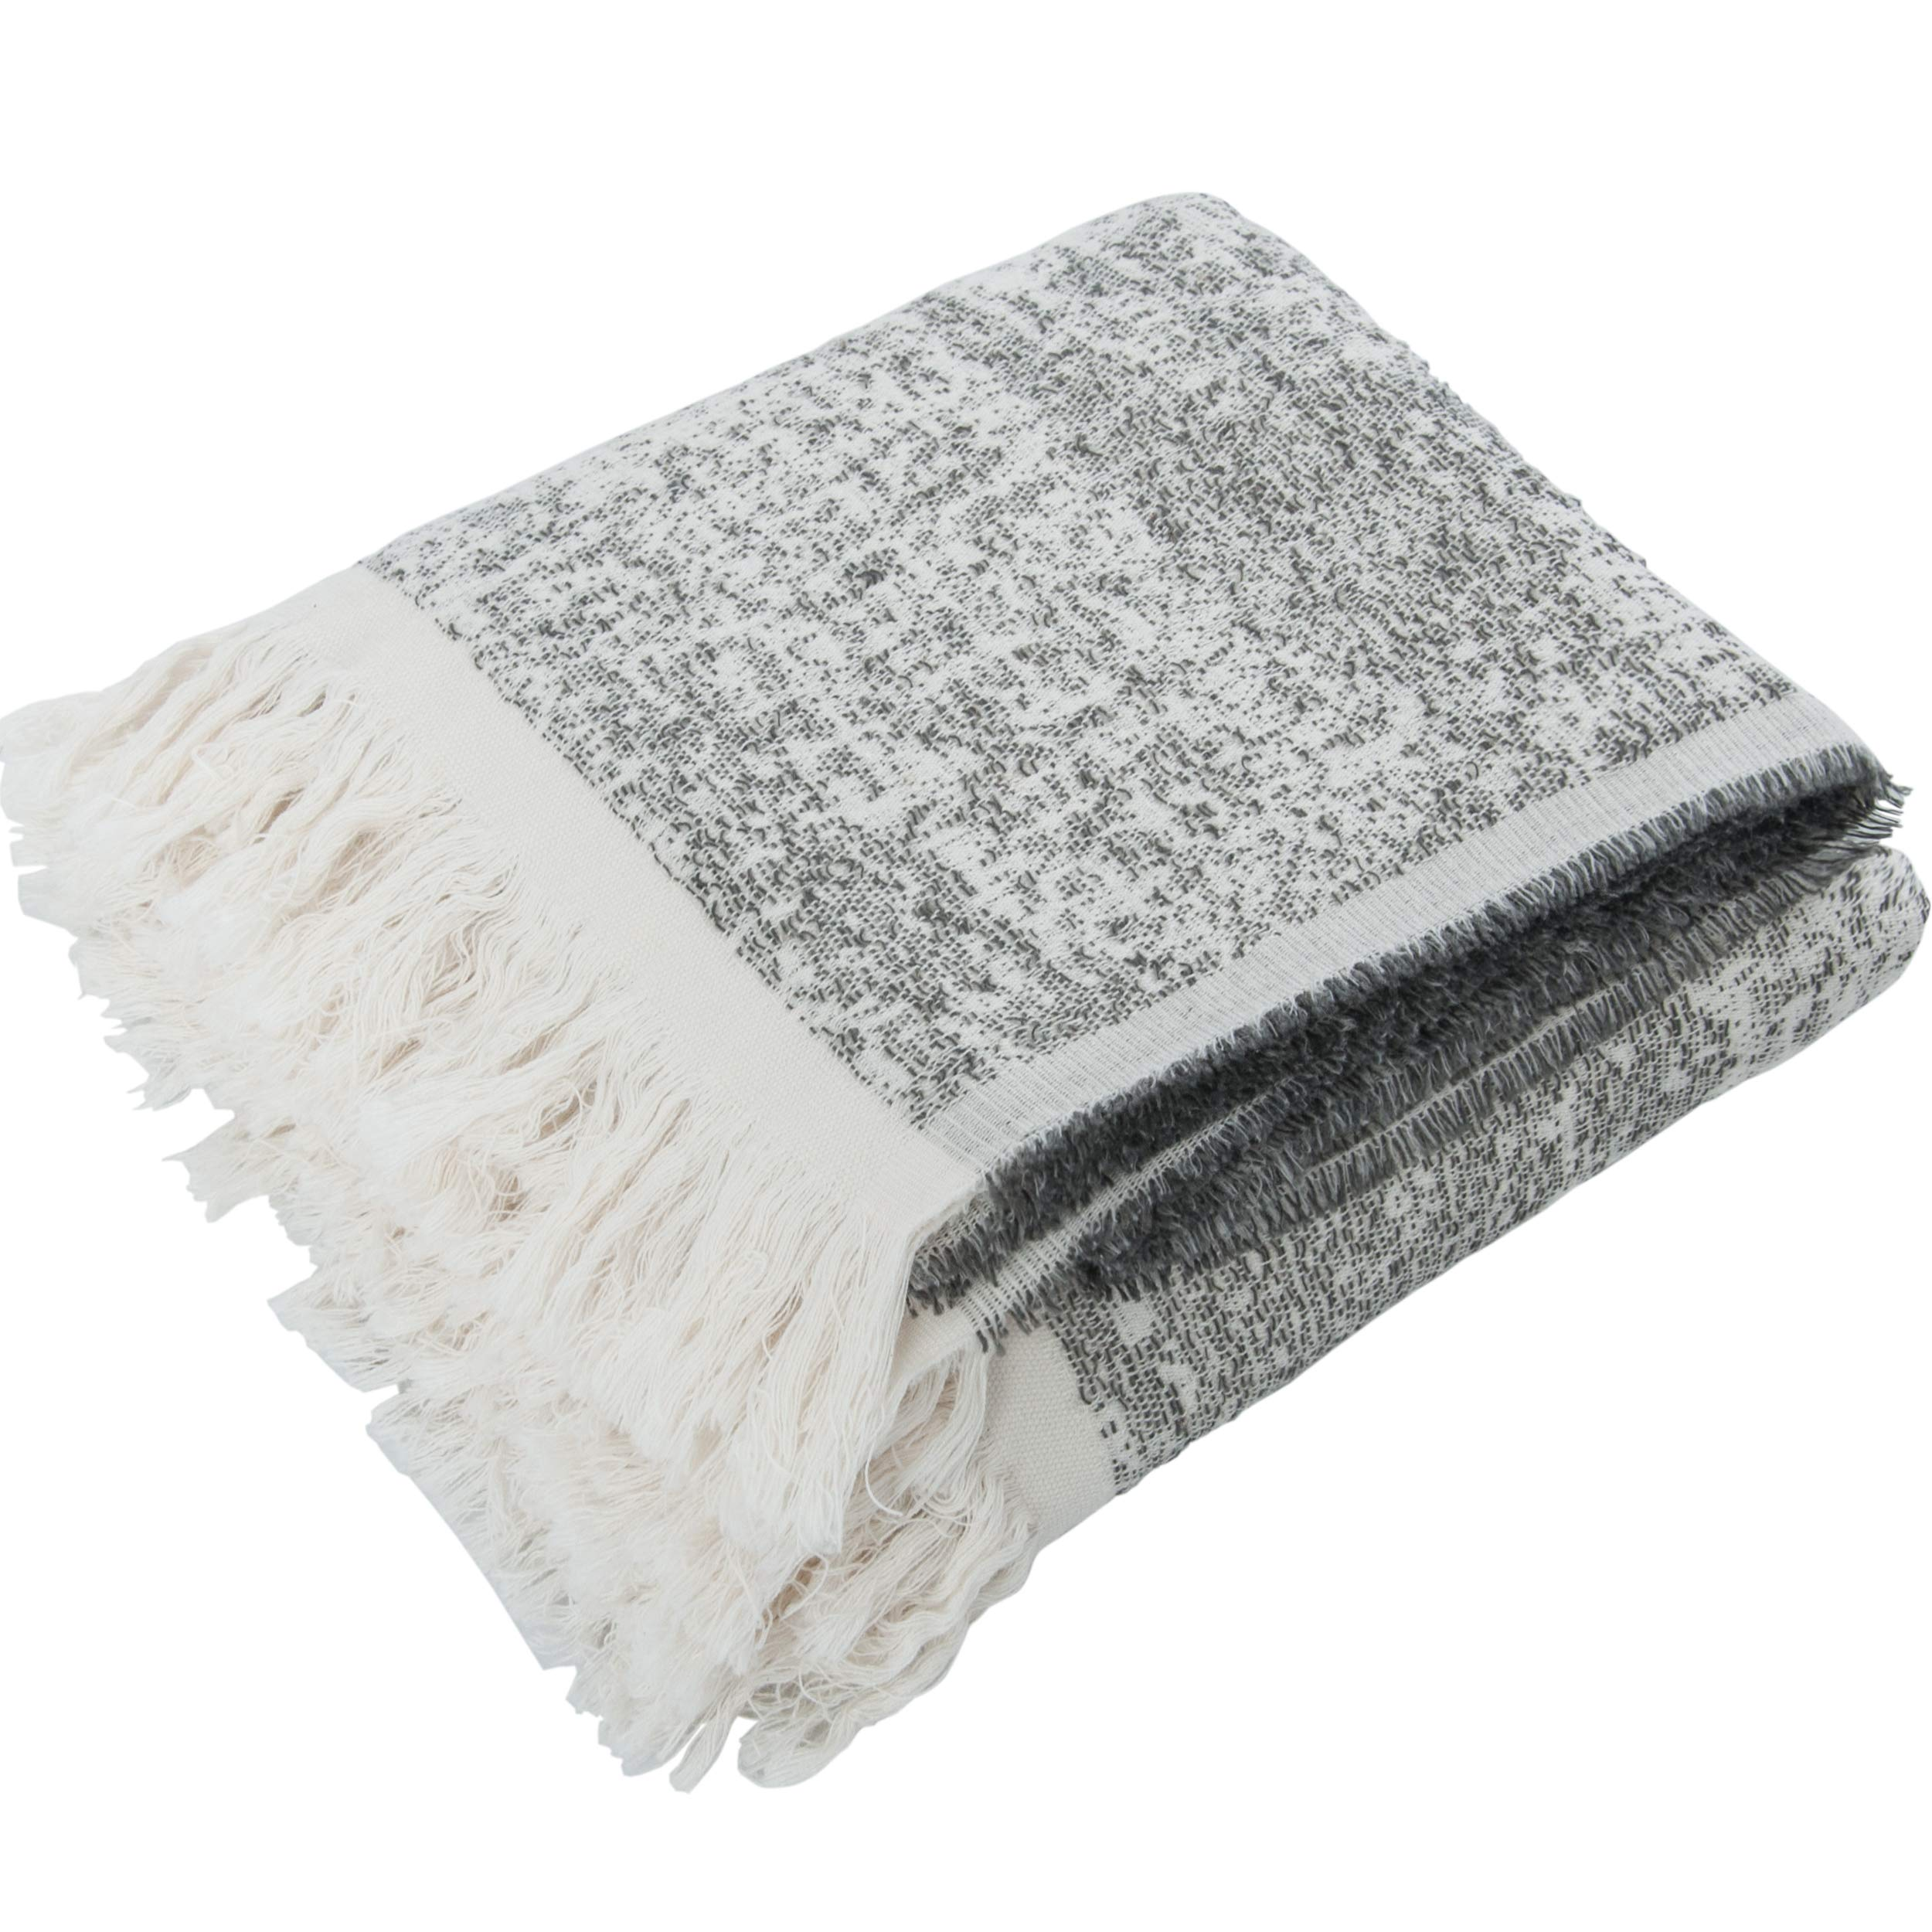 NTBAY Tassel Design Linen Throw, Breathable and Cozy Soft Decorative Reversible Blanket, 59 x 65 Inches, Grey